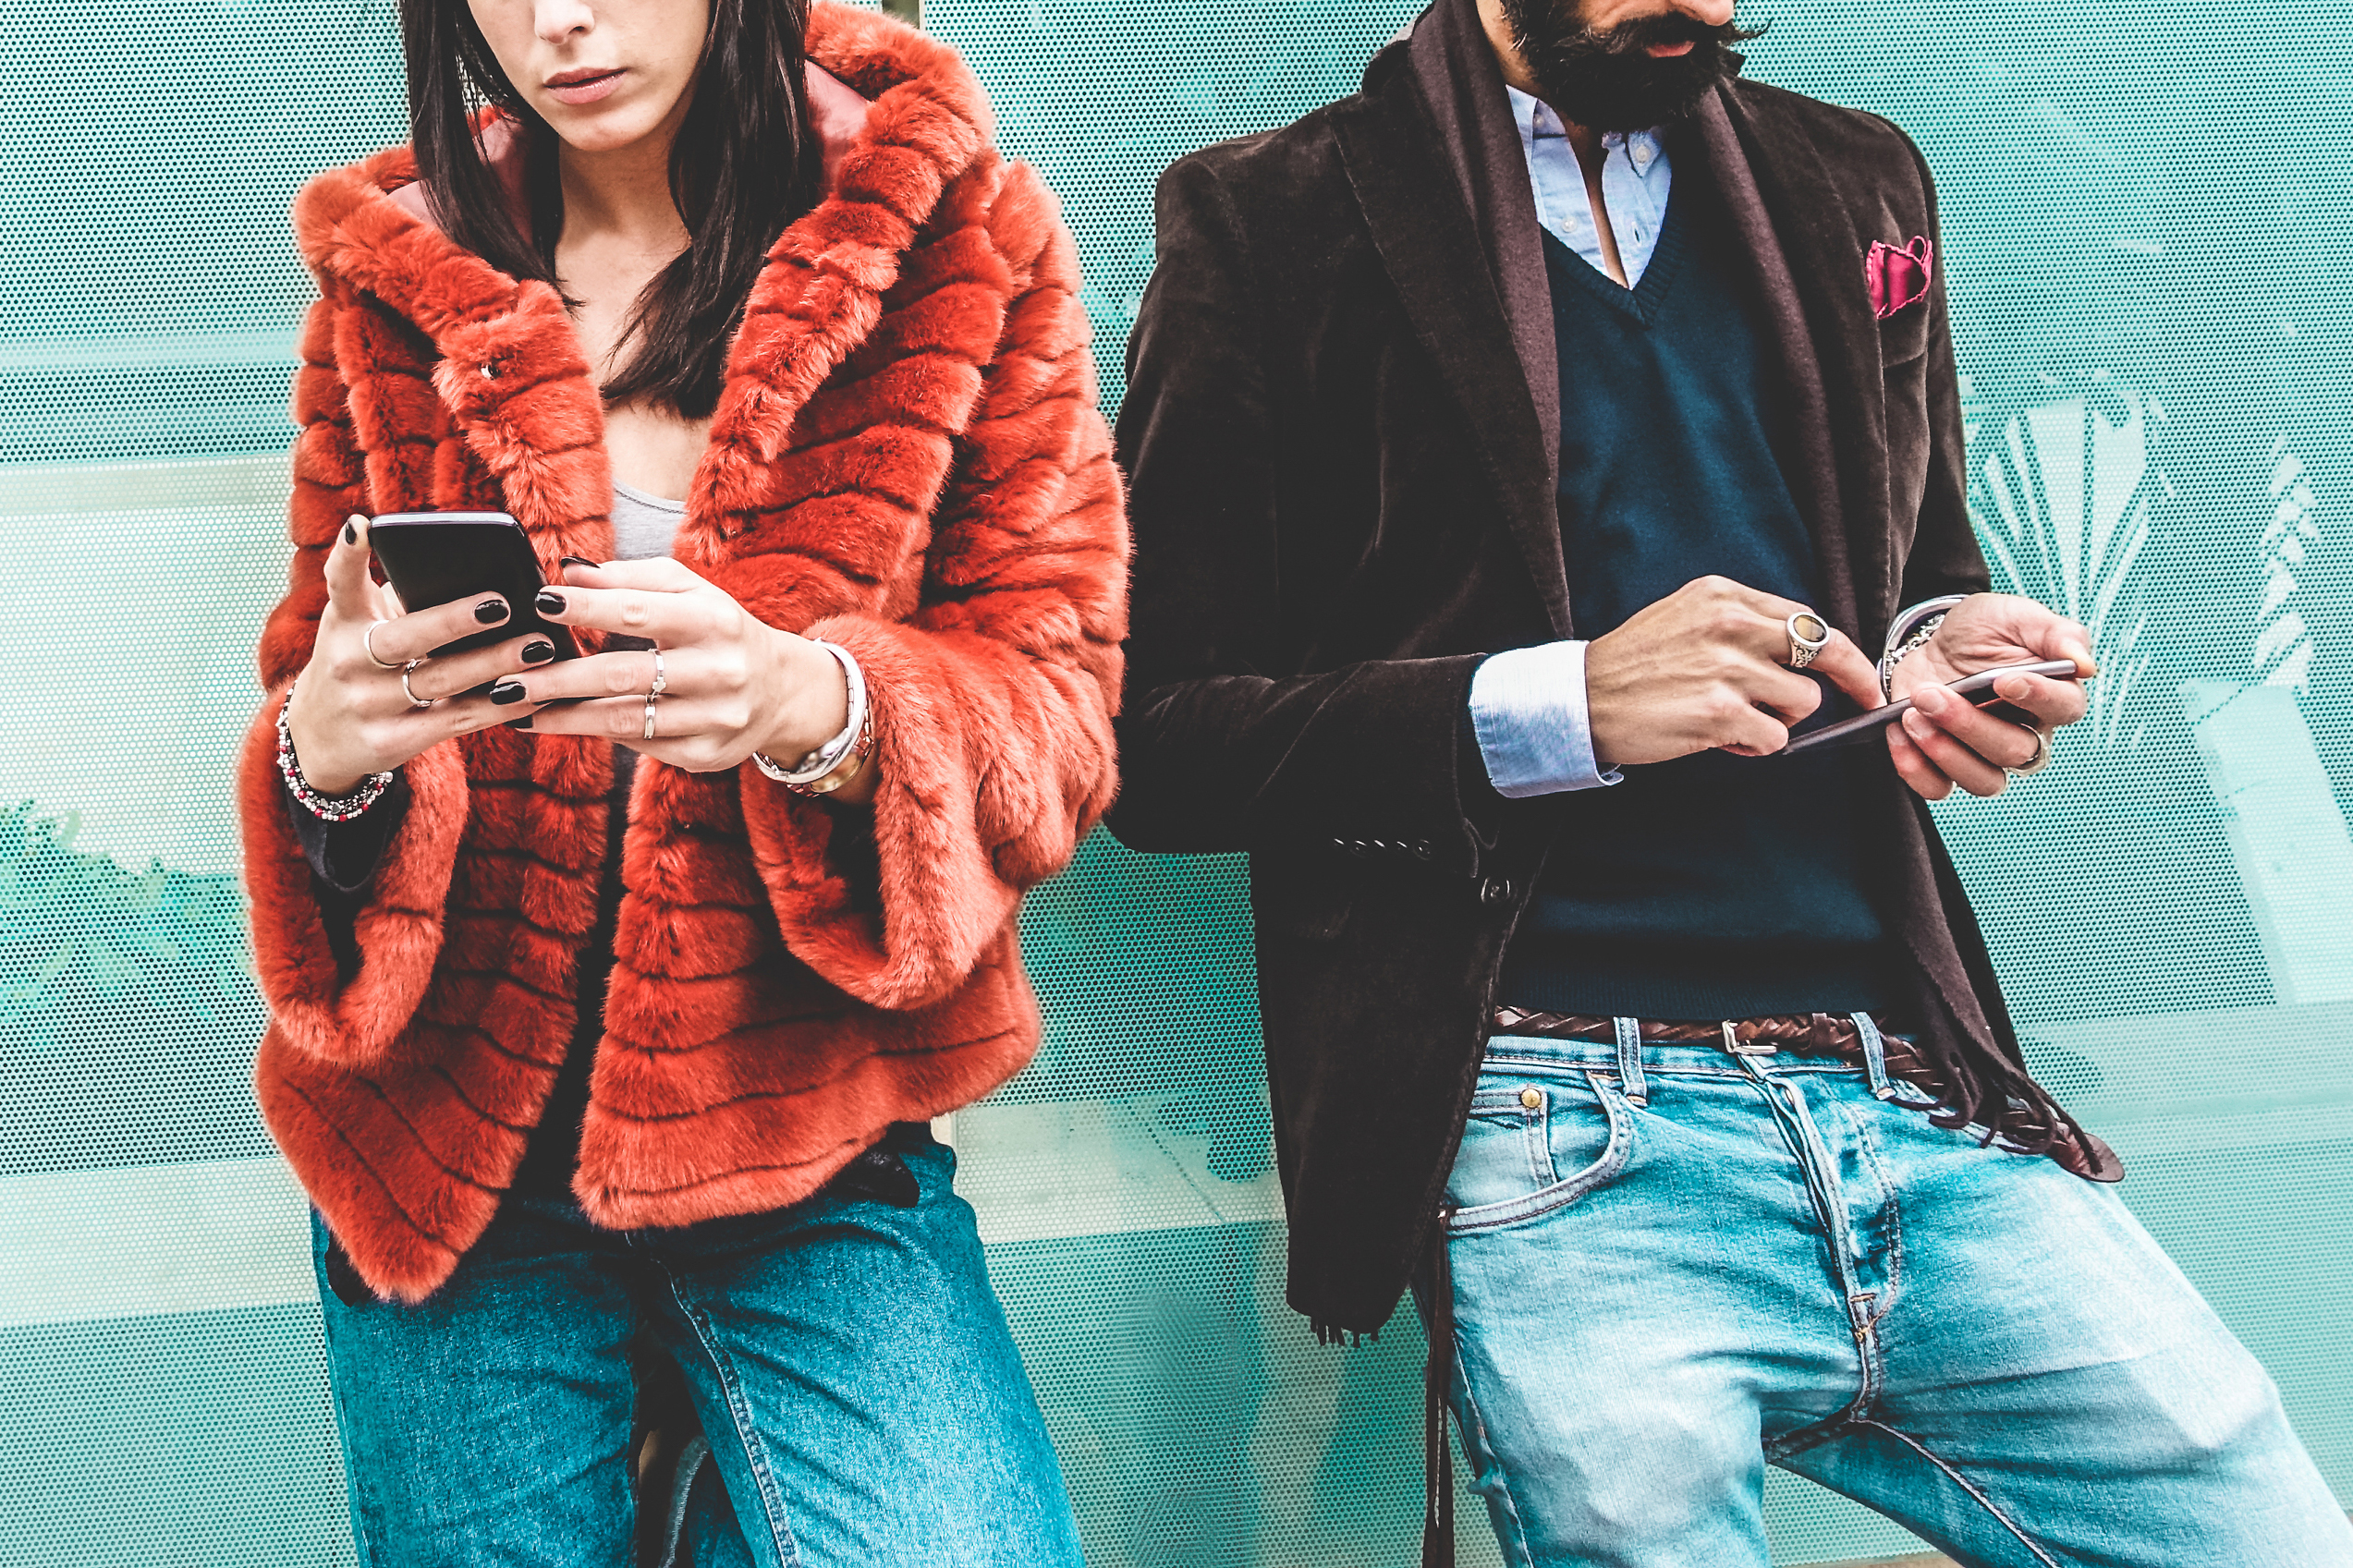 Opinion: About that article calling influencers 'dishonest' and 'wasteful'